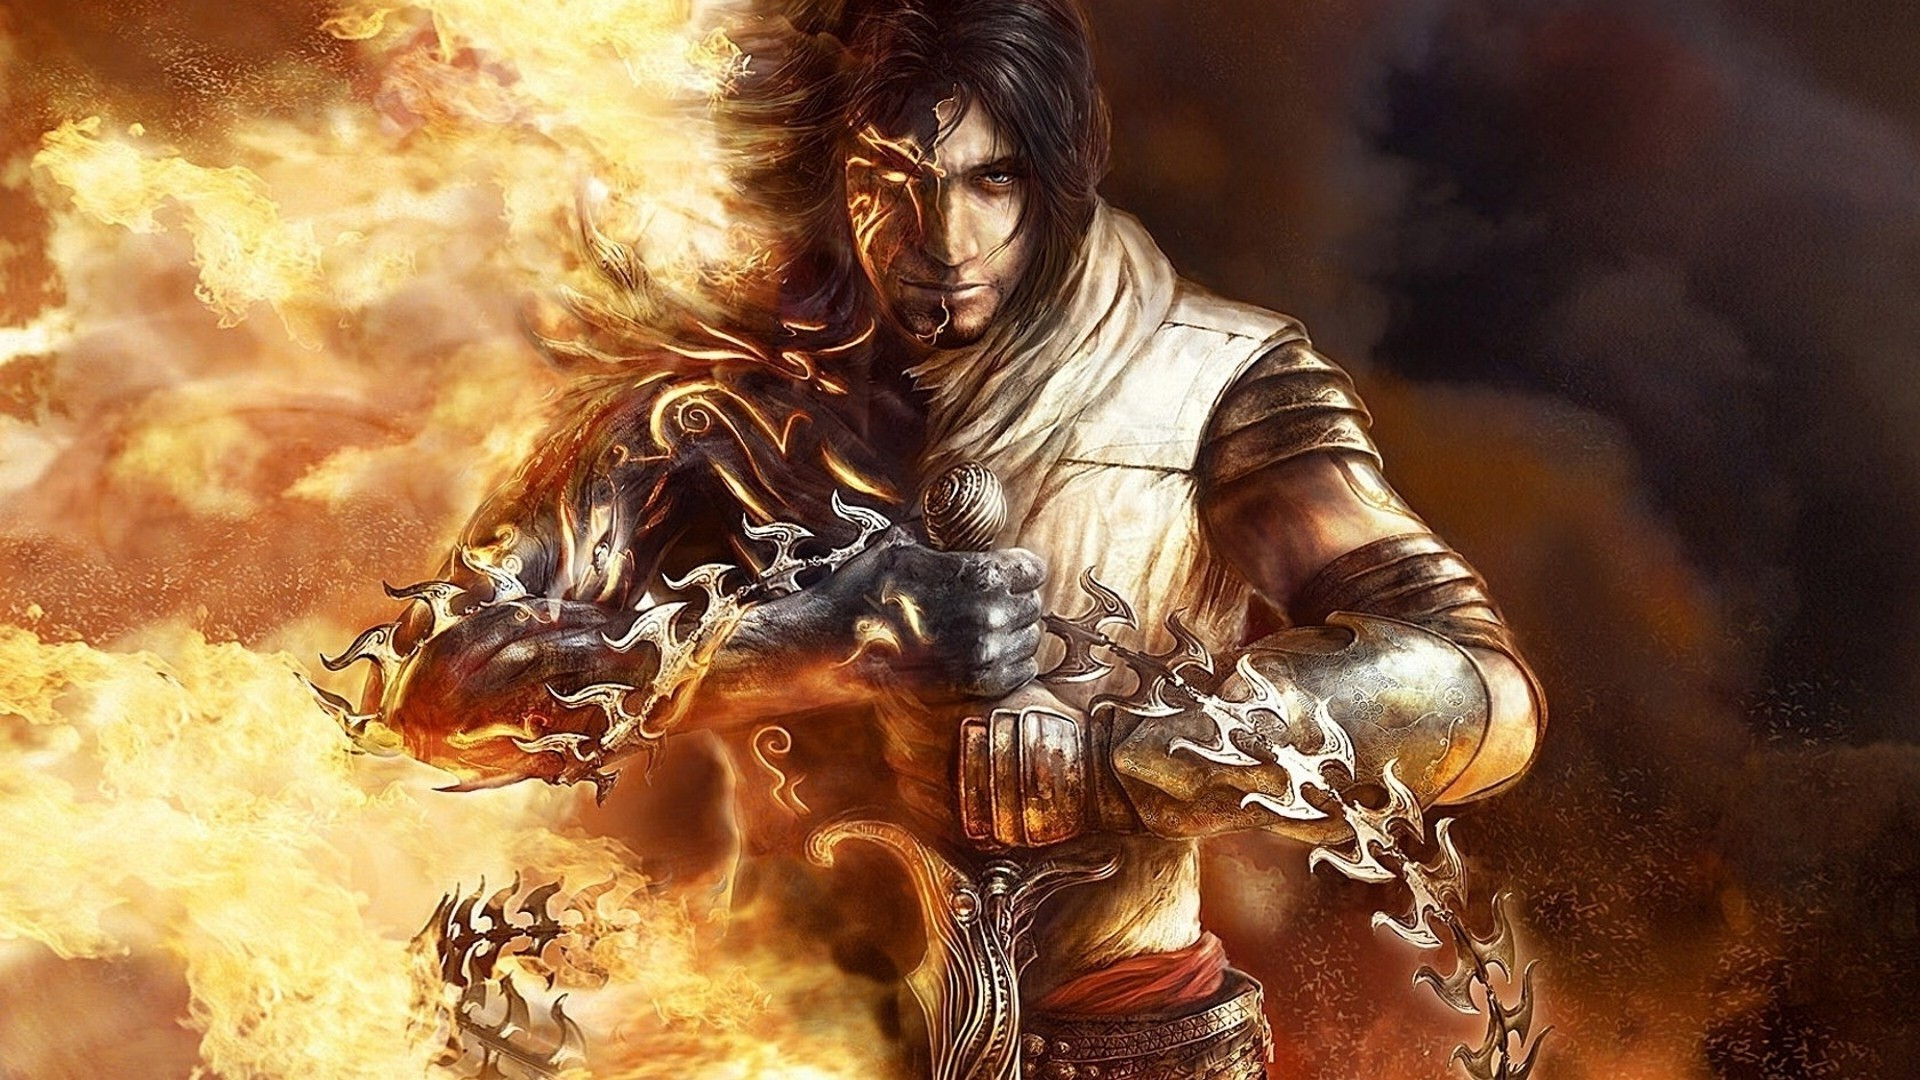 Prince Of Persia The Two Thrones Hd Wallpapers 1080p Wallpaper 1920x1080 Px Armor Fantasy Art Fire Heroes